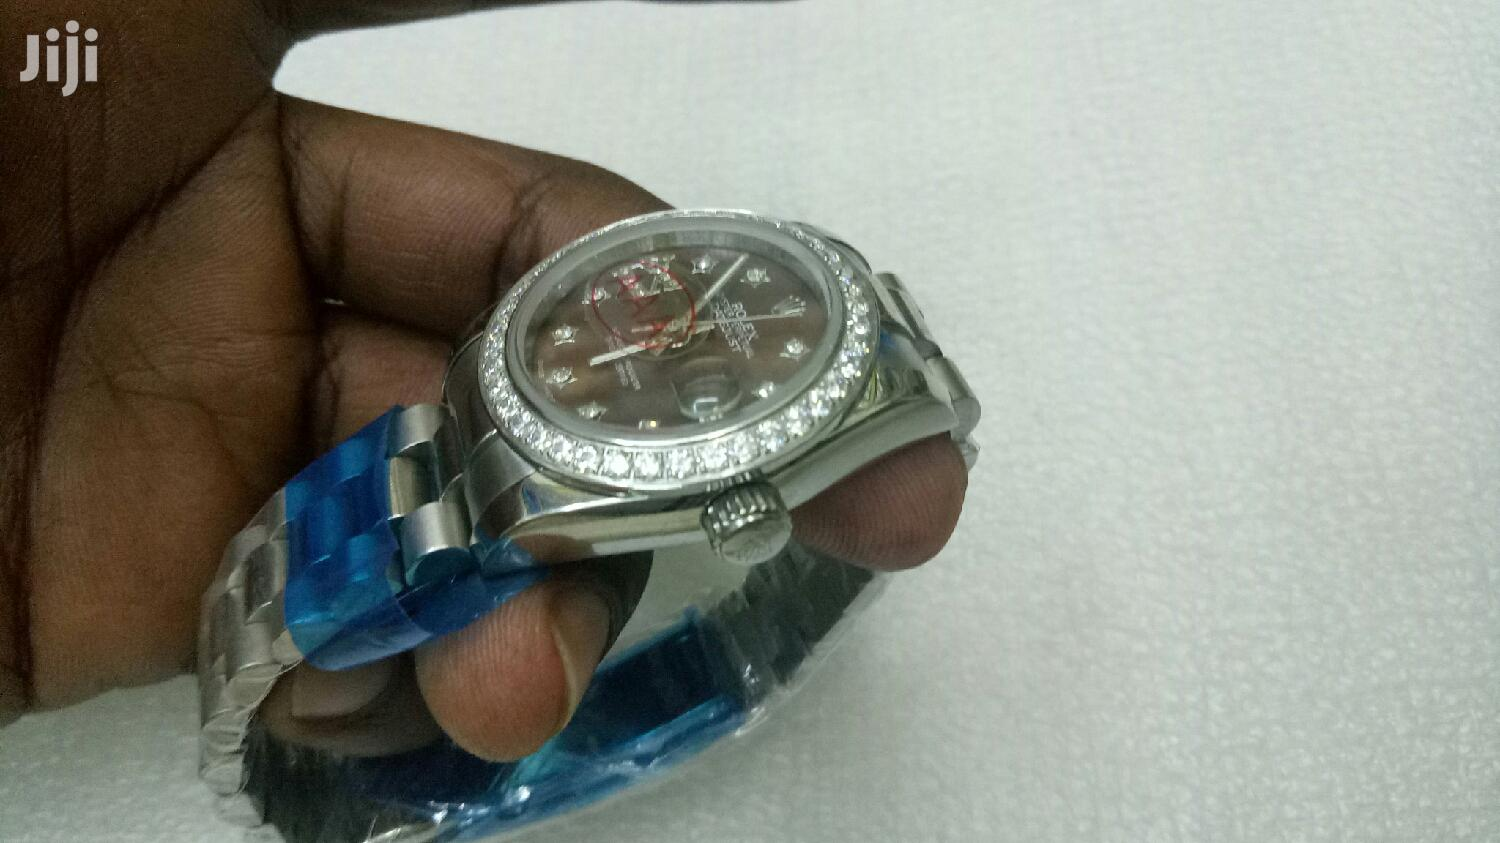 Ladies Rolex Mechanical | Watches for sale in Nairobi Central, Nairobi, Kenya